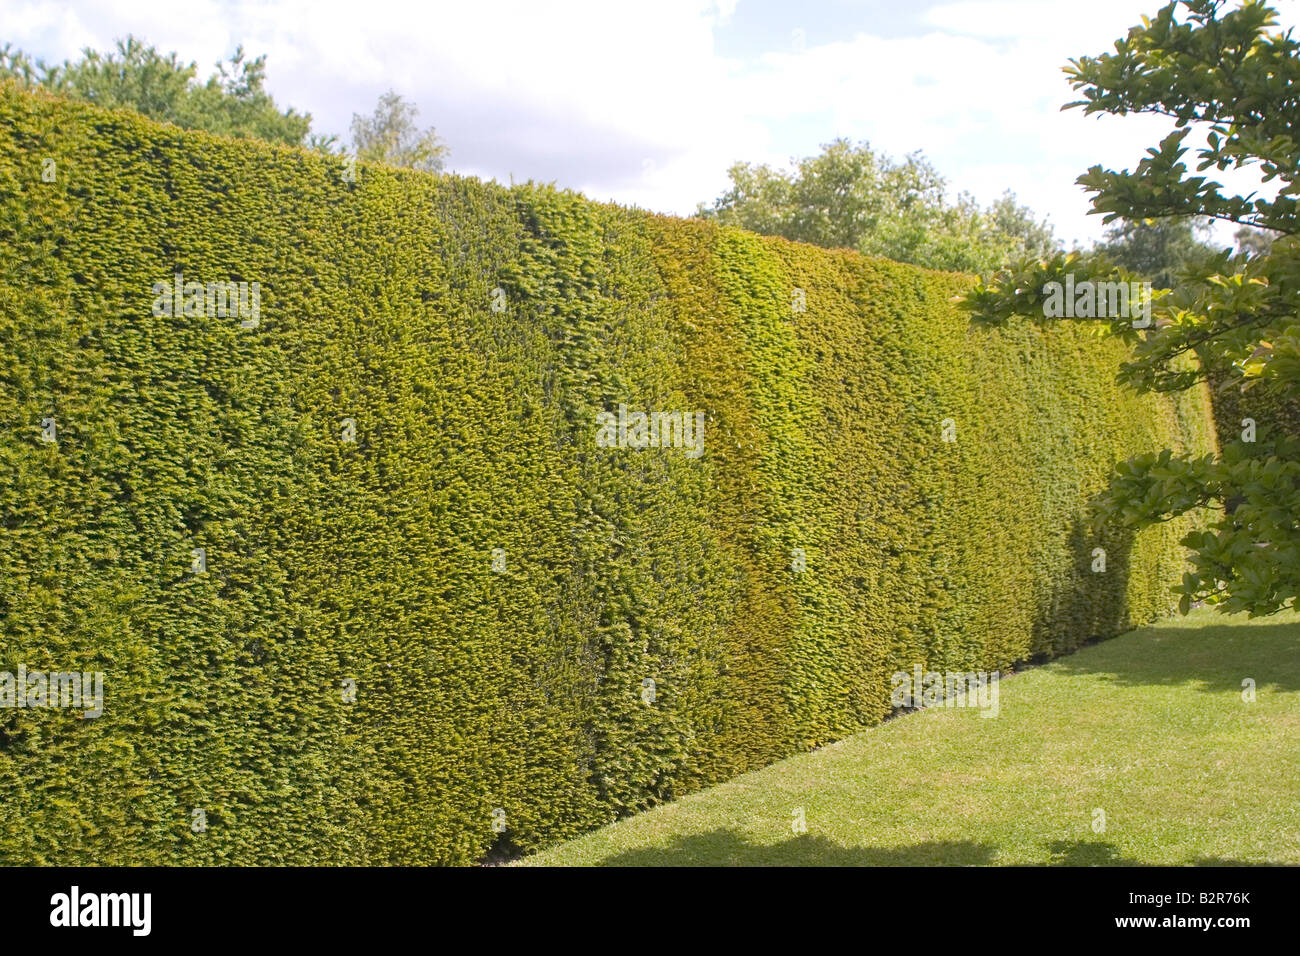 High yew hedge and lawn - Stock Image